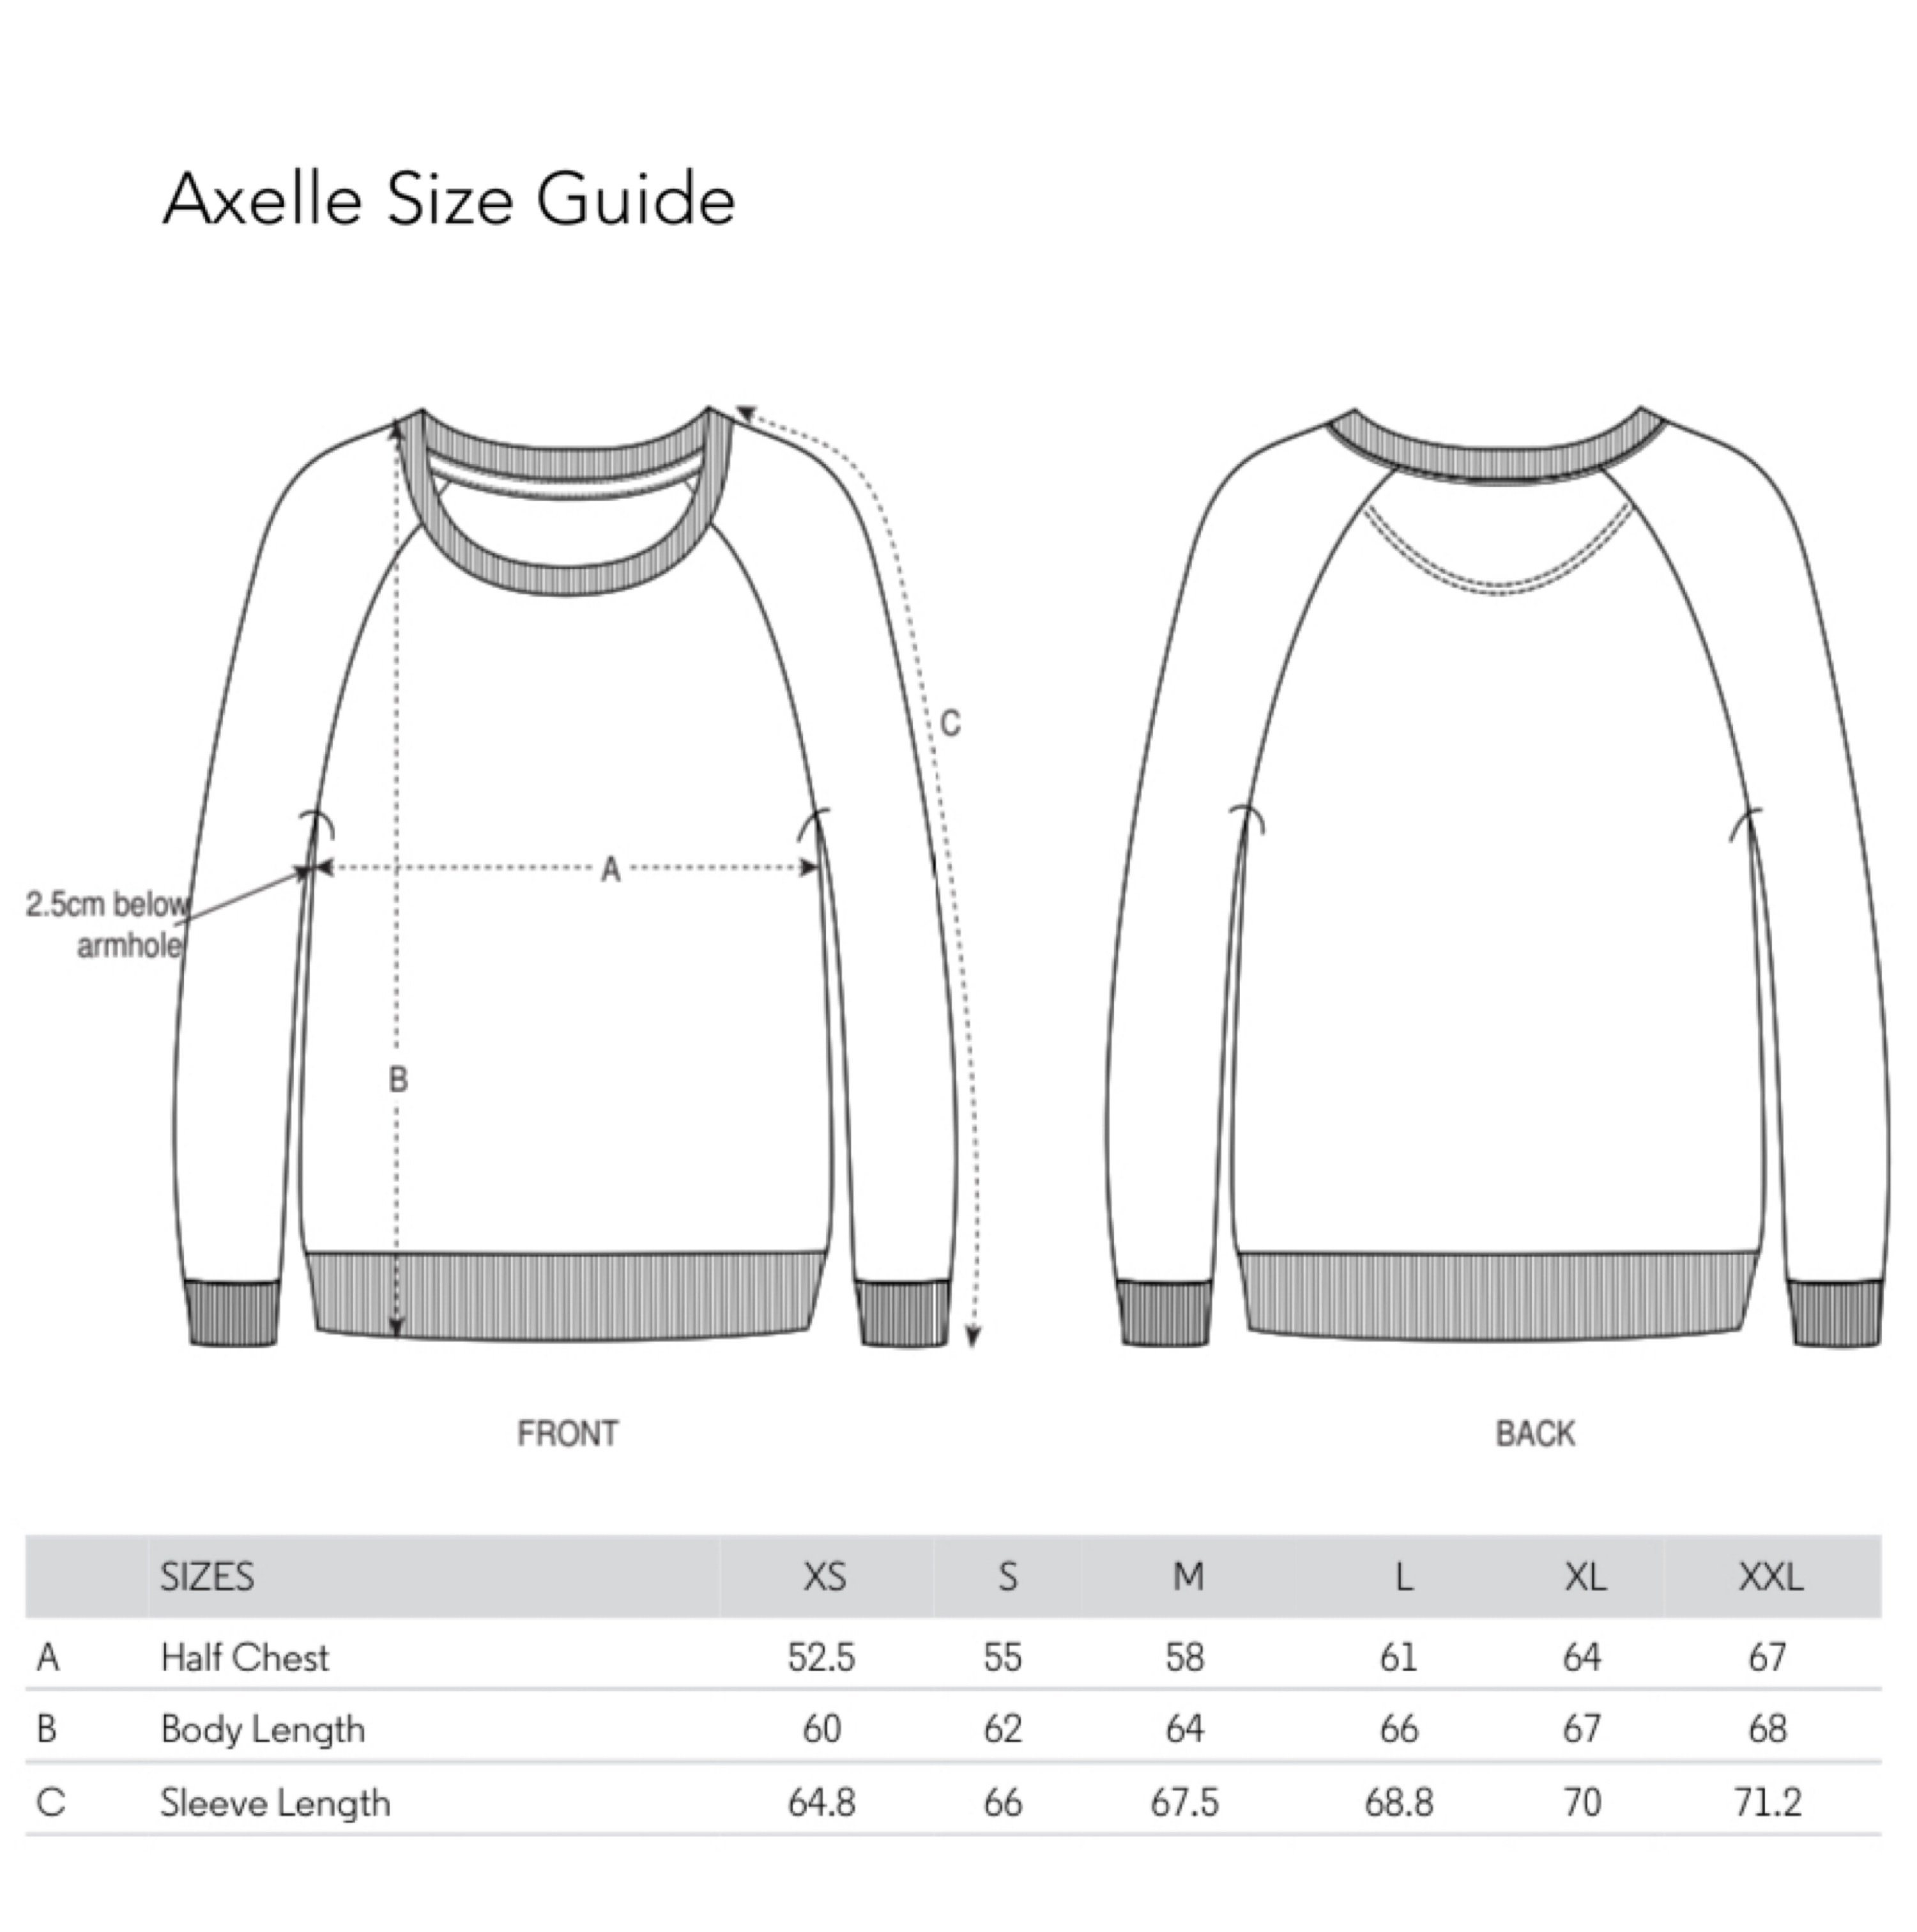 Axelle Size Guide